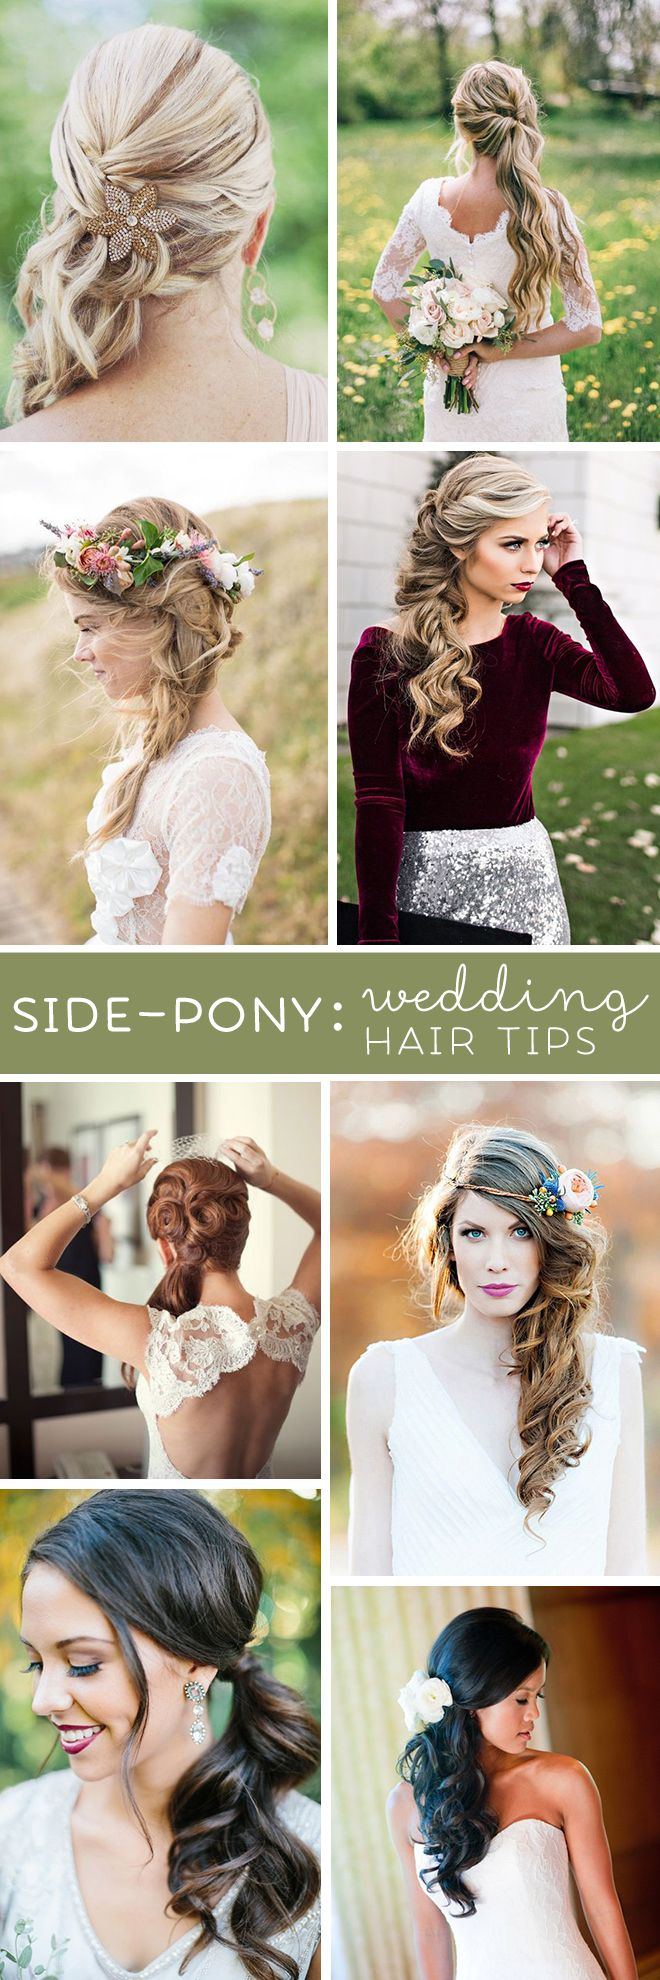 The Best Wedding Hair Tips For Wearing A Side Ponytail Elegant